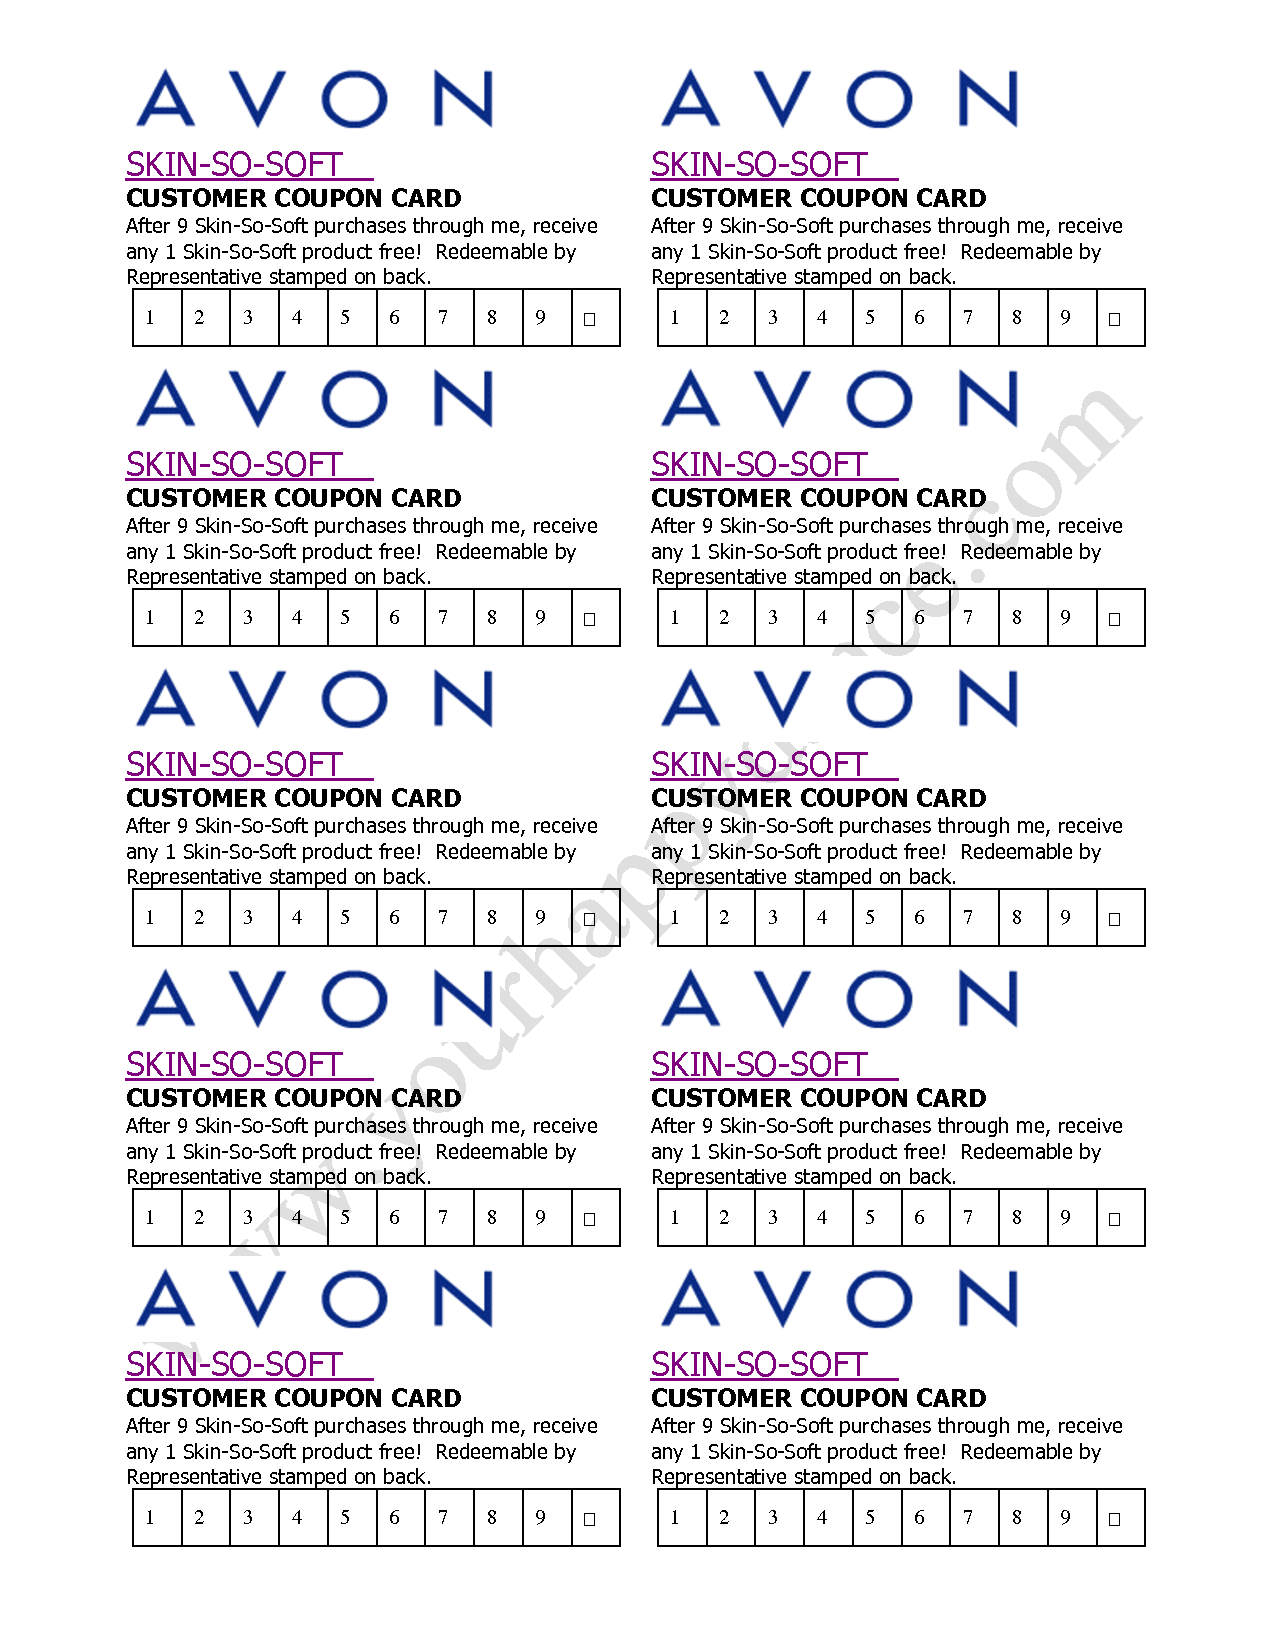 Avon Skin So Soft Coupon Card ... U2026 | Pinteresu2026  Business Coupon Template